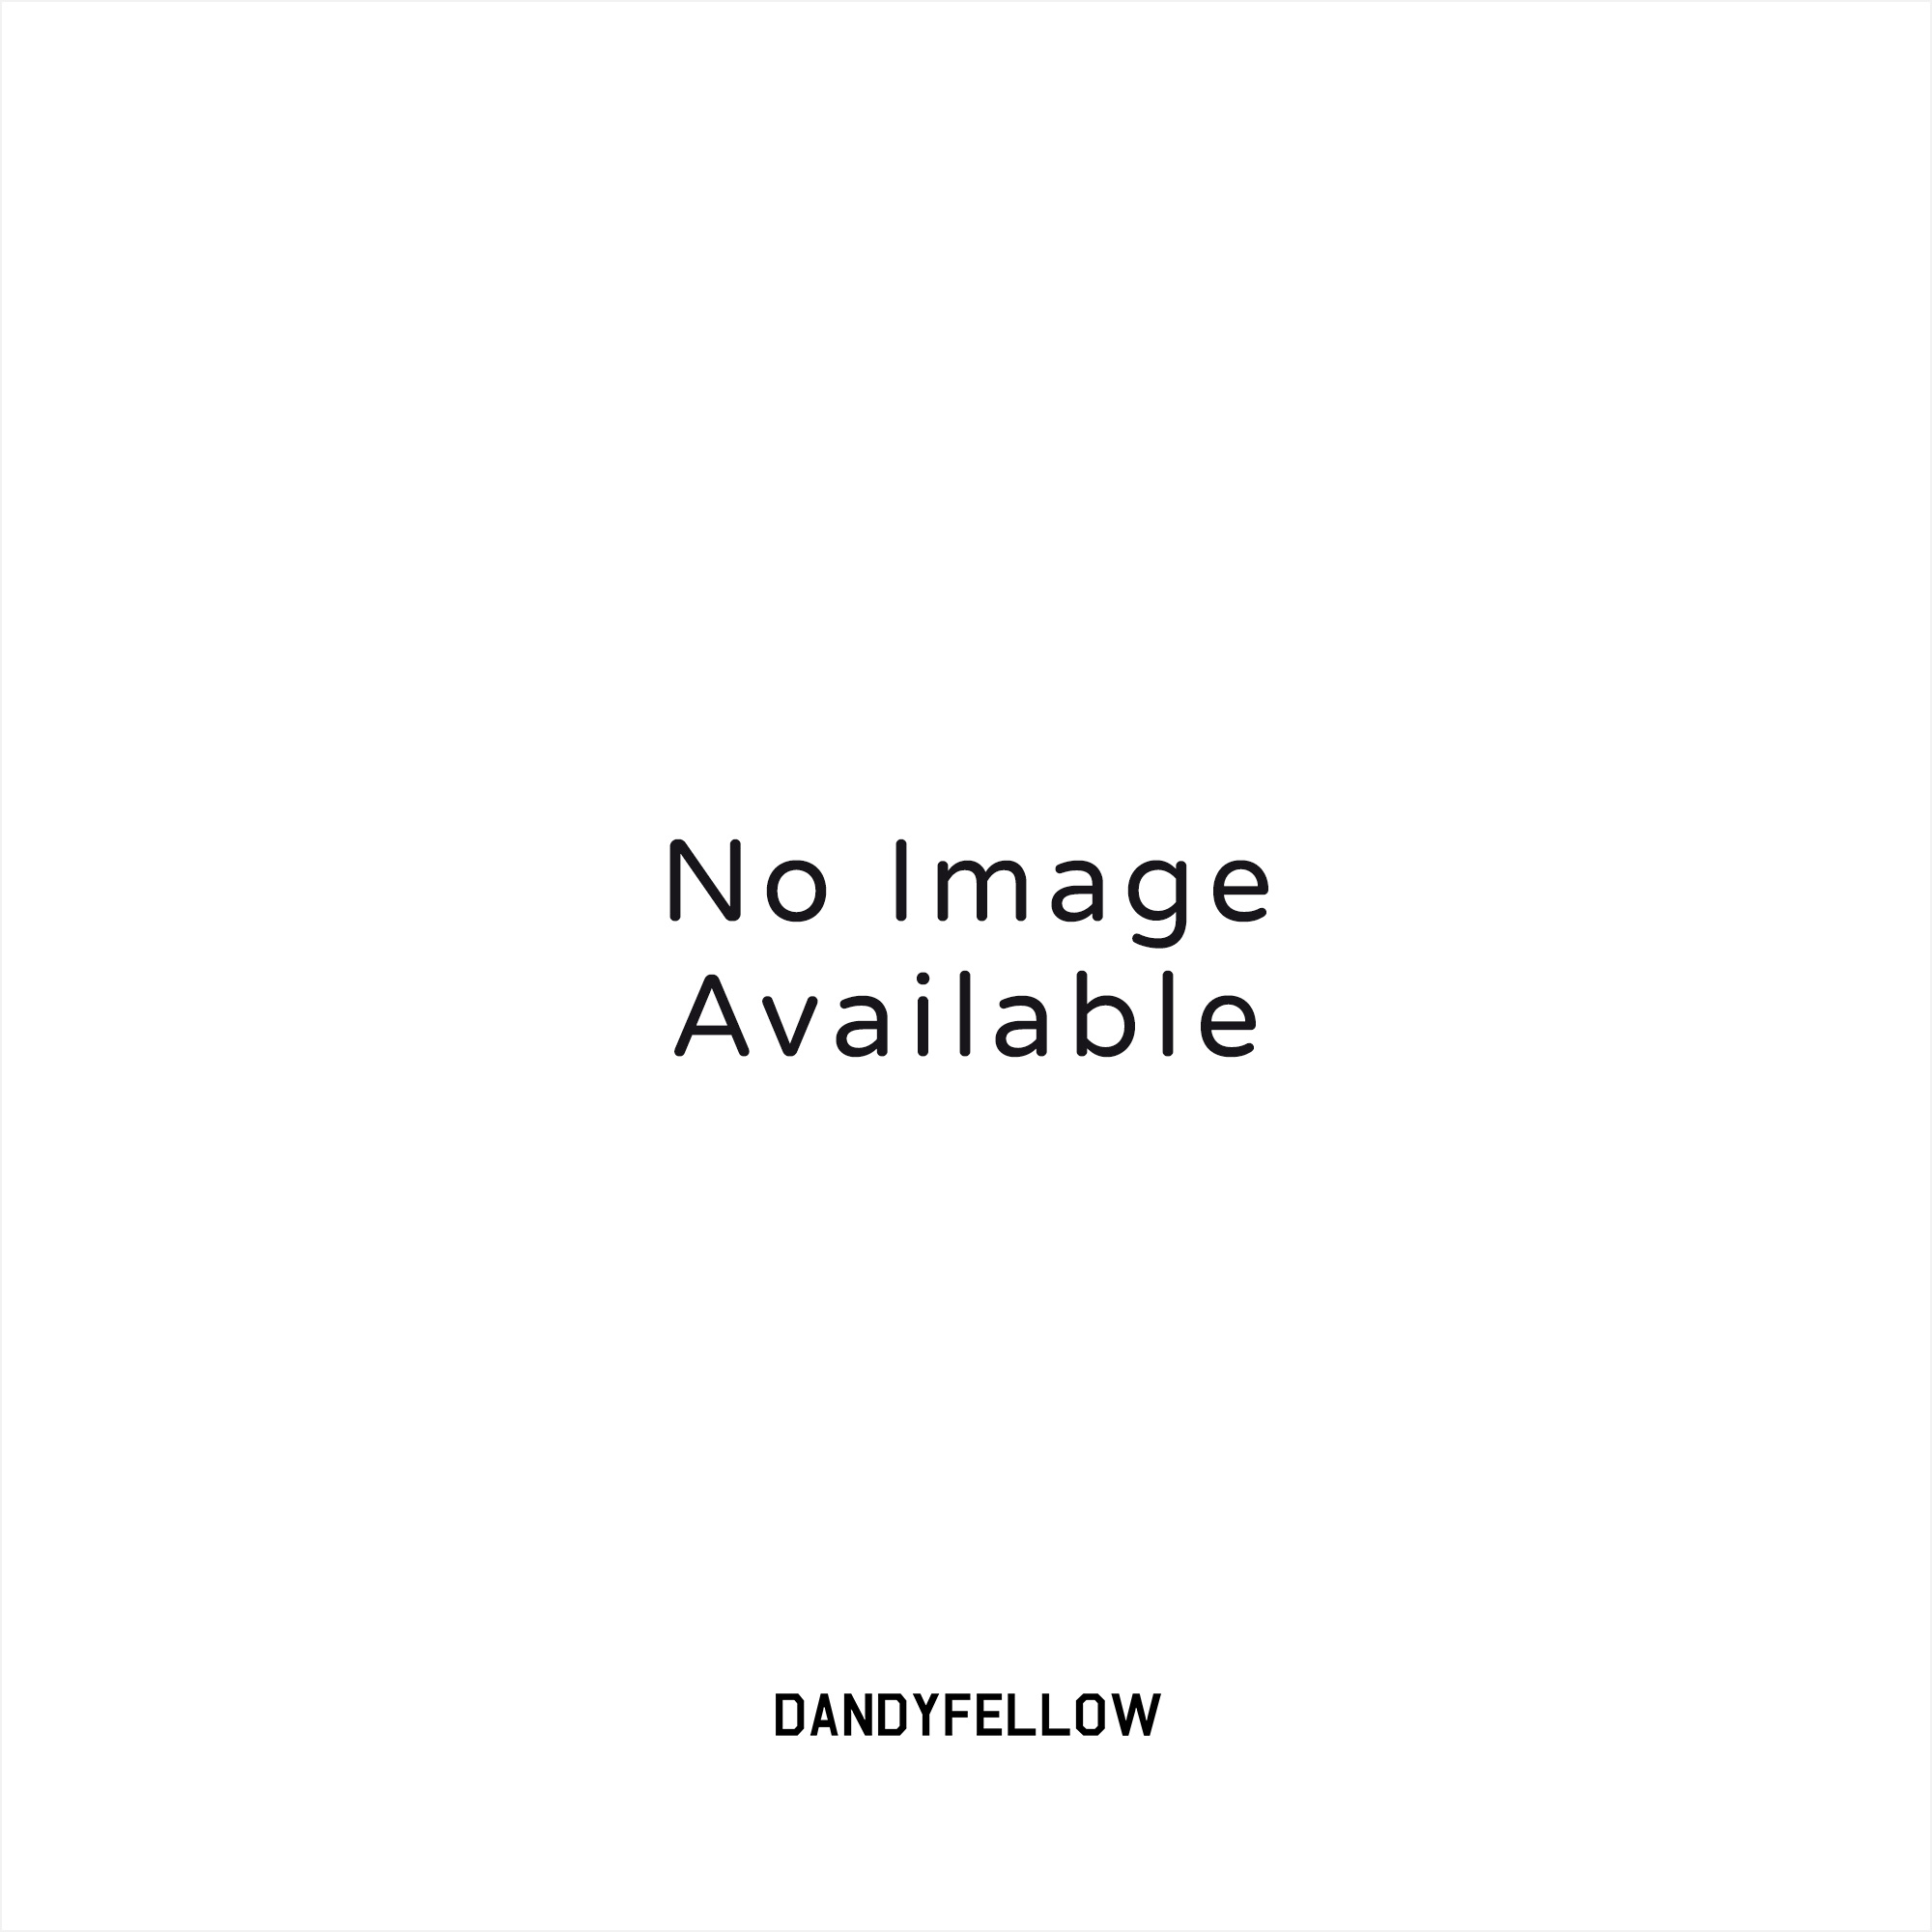 Lacoste Cotton Fleece Sapphire Blue Sweatshirt SH1924 00DPB